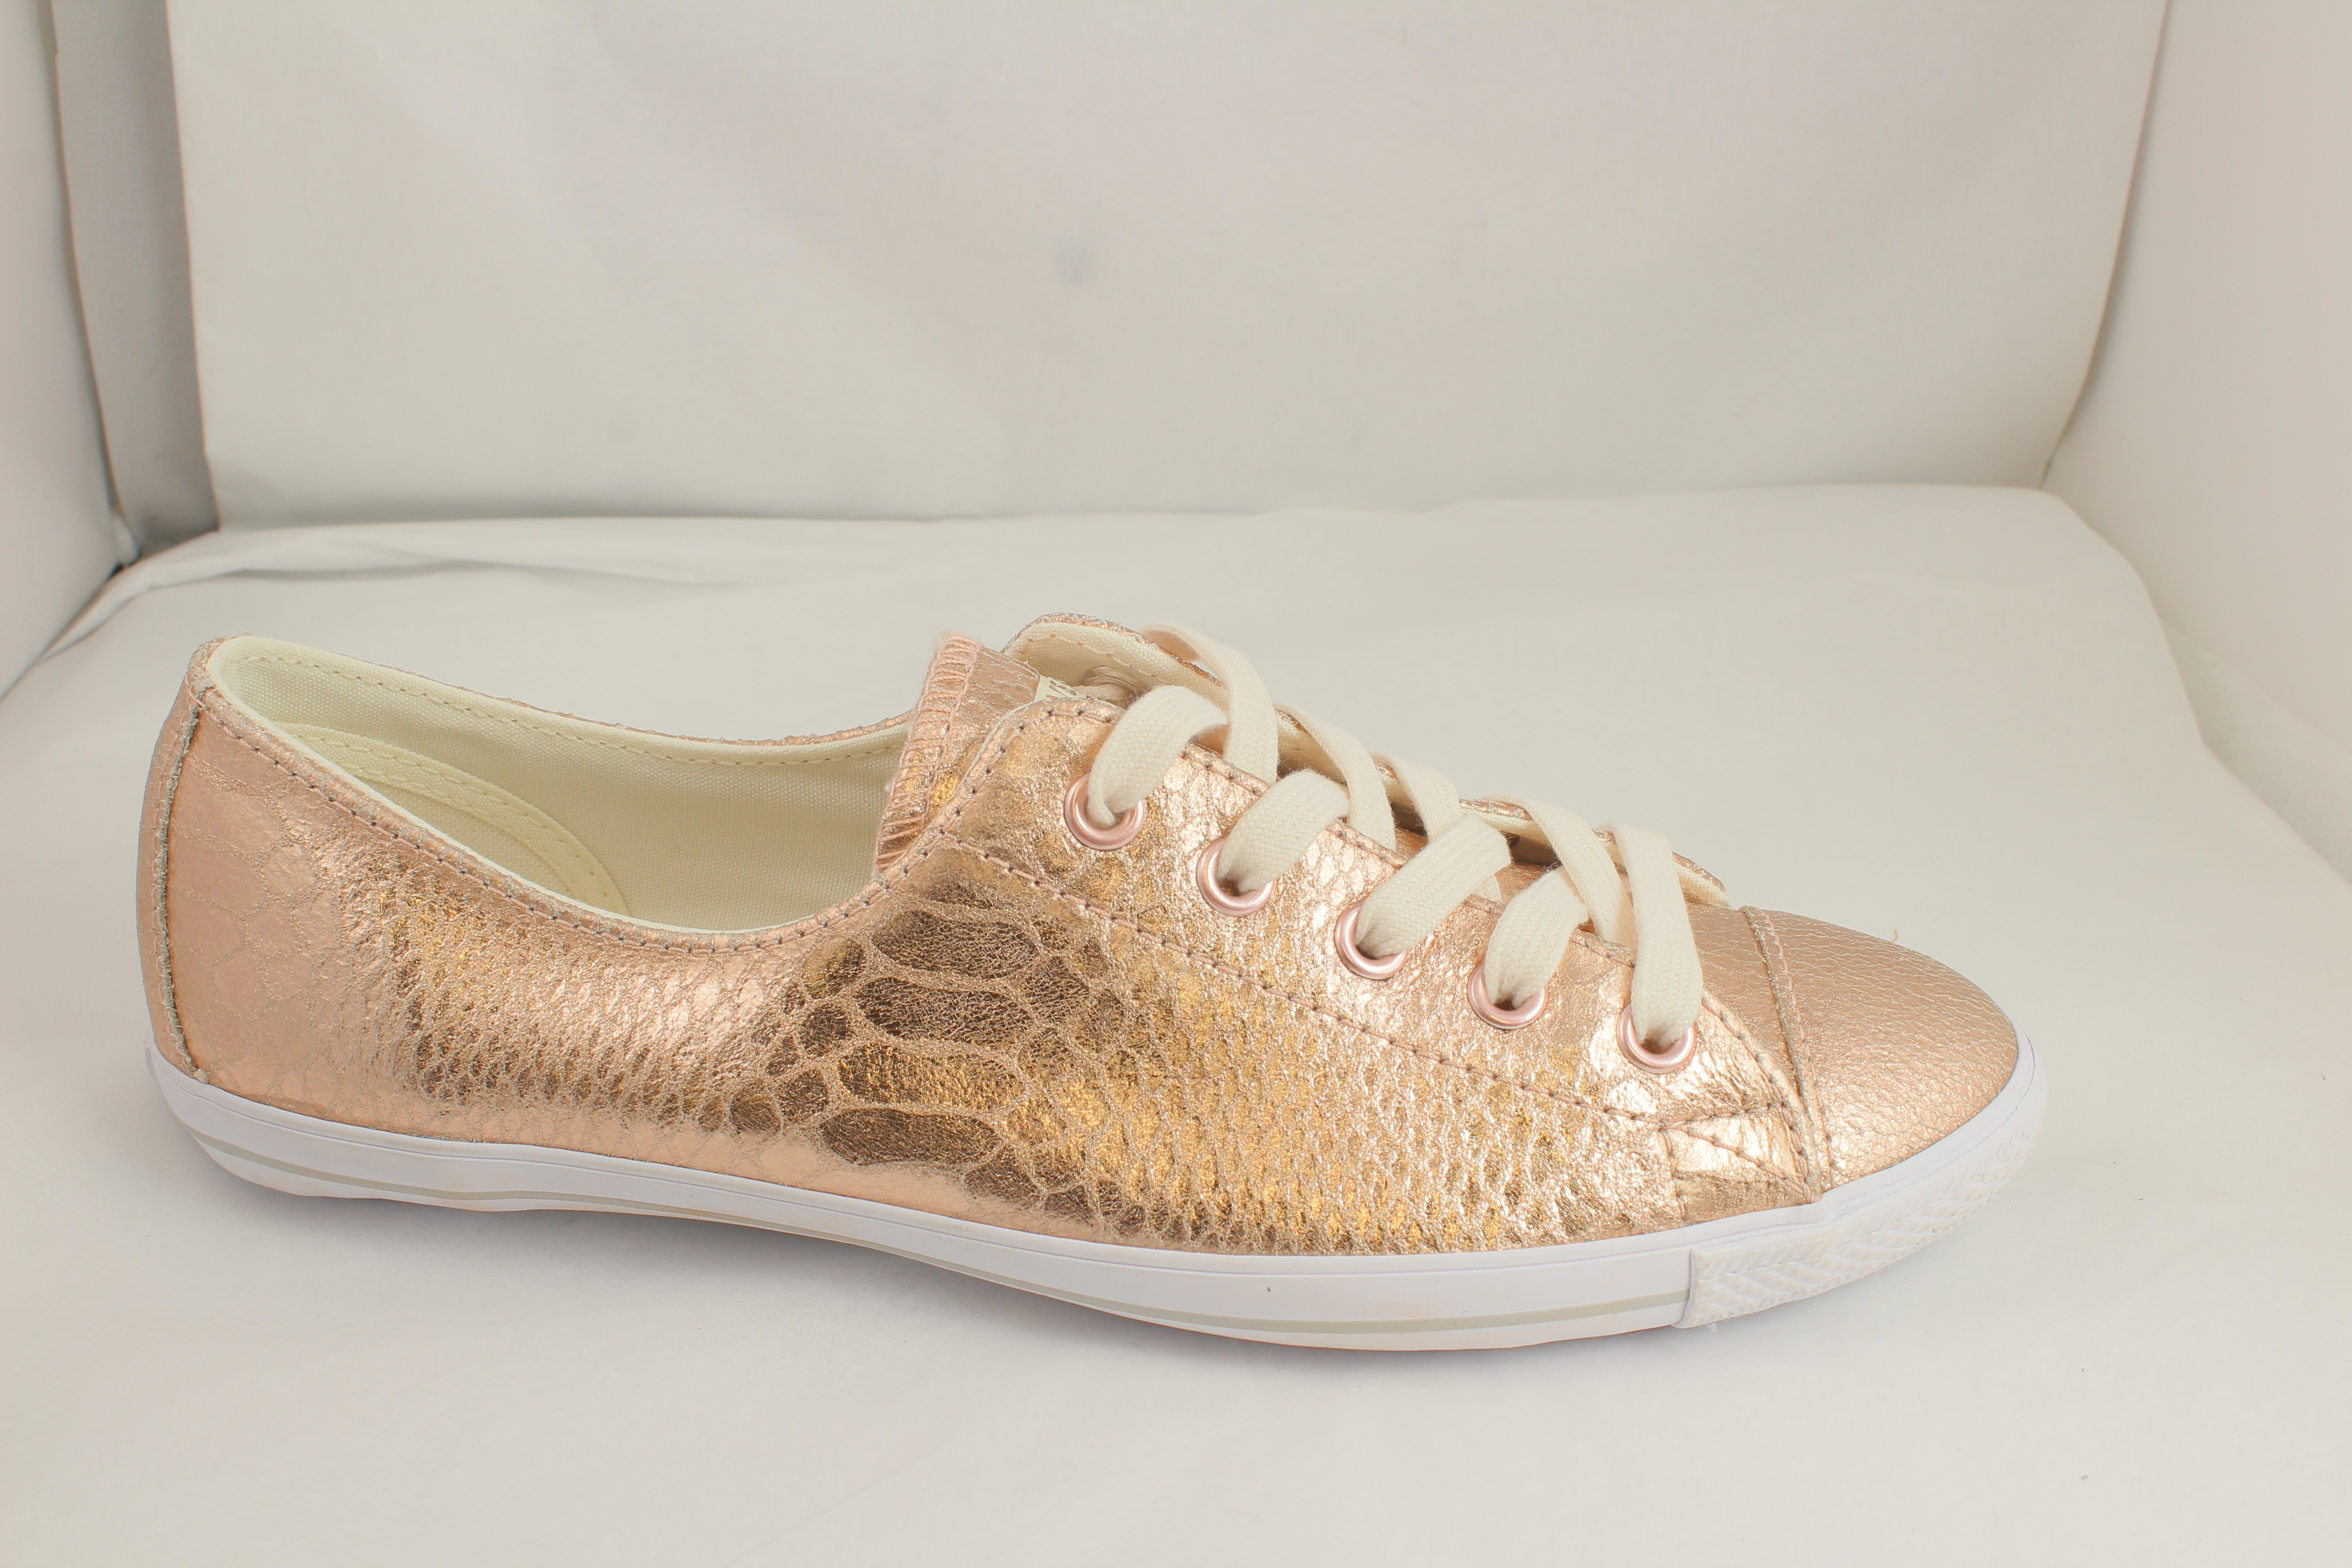 b81a0d00368a Sentinel Womens Converse Ct Lite 2 Rose Metallic Snake Trainers UK Size  5 Ex Display